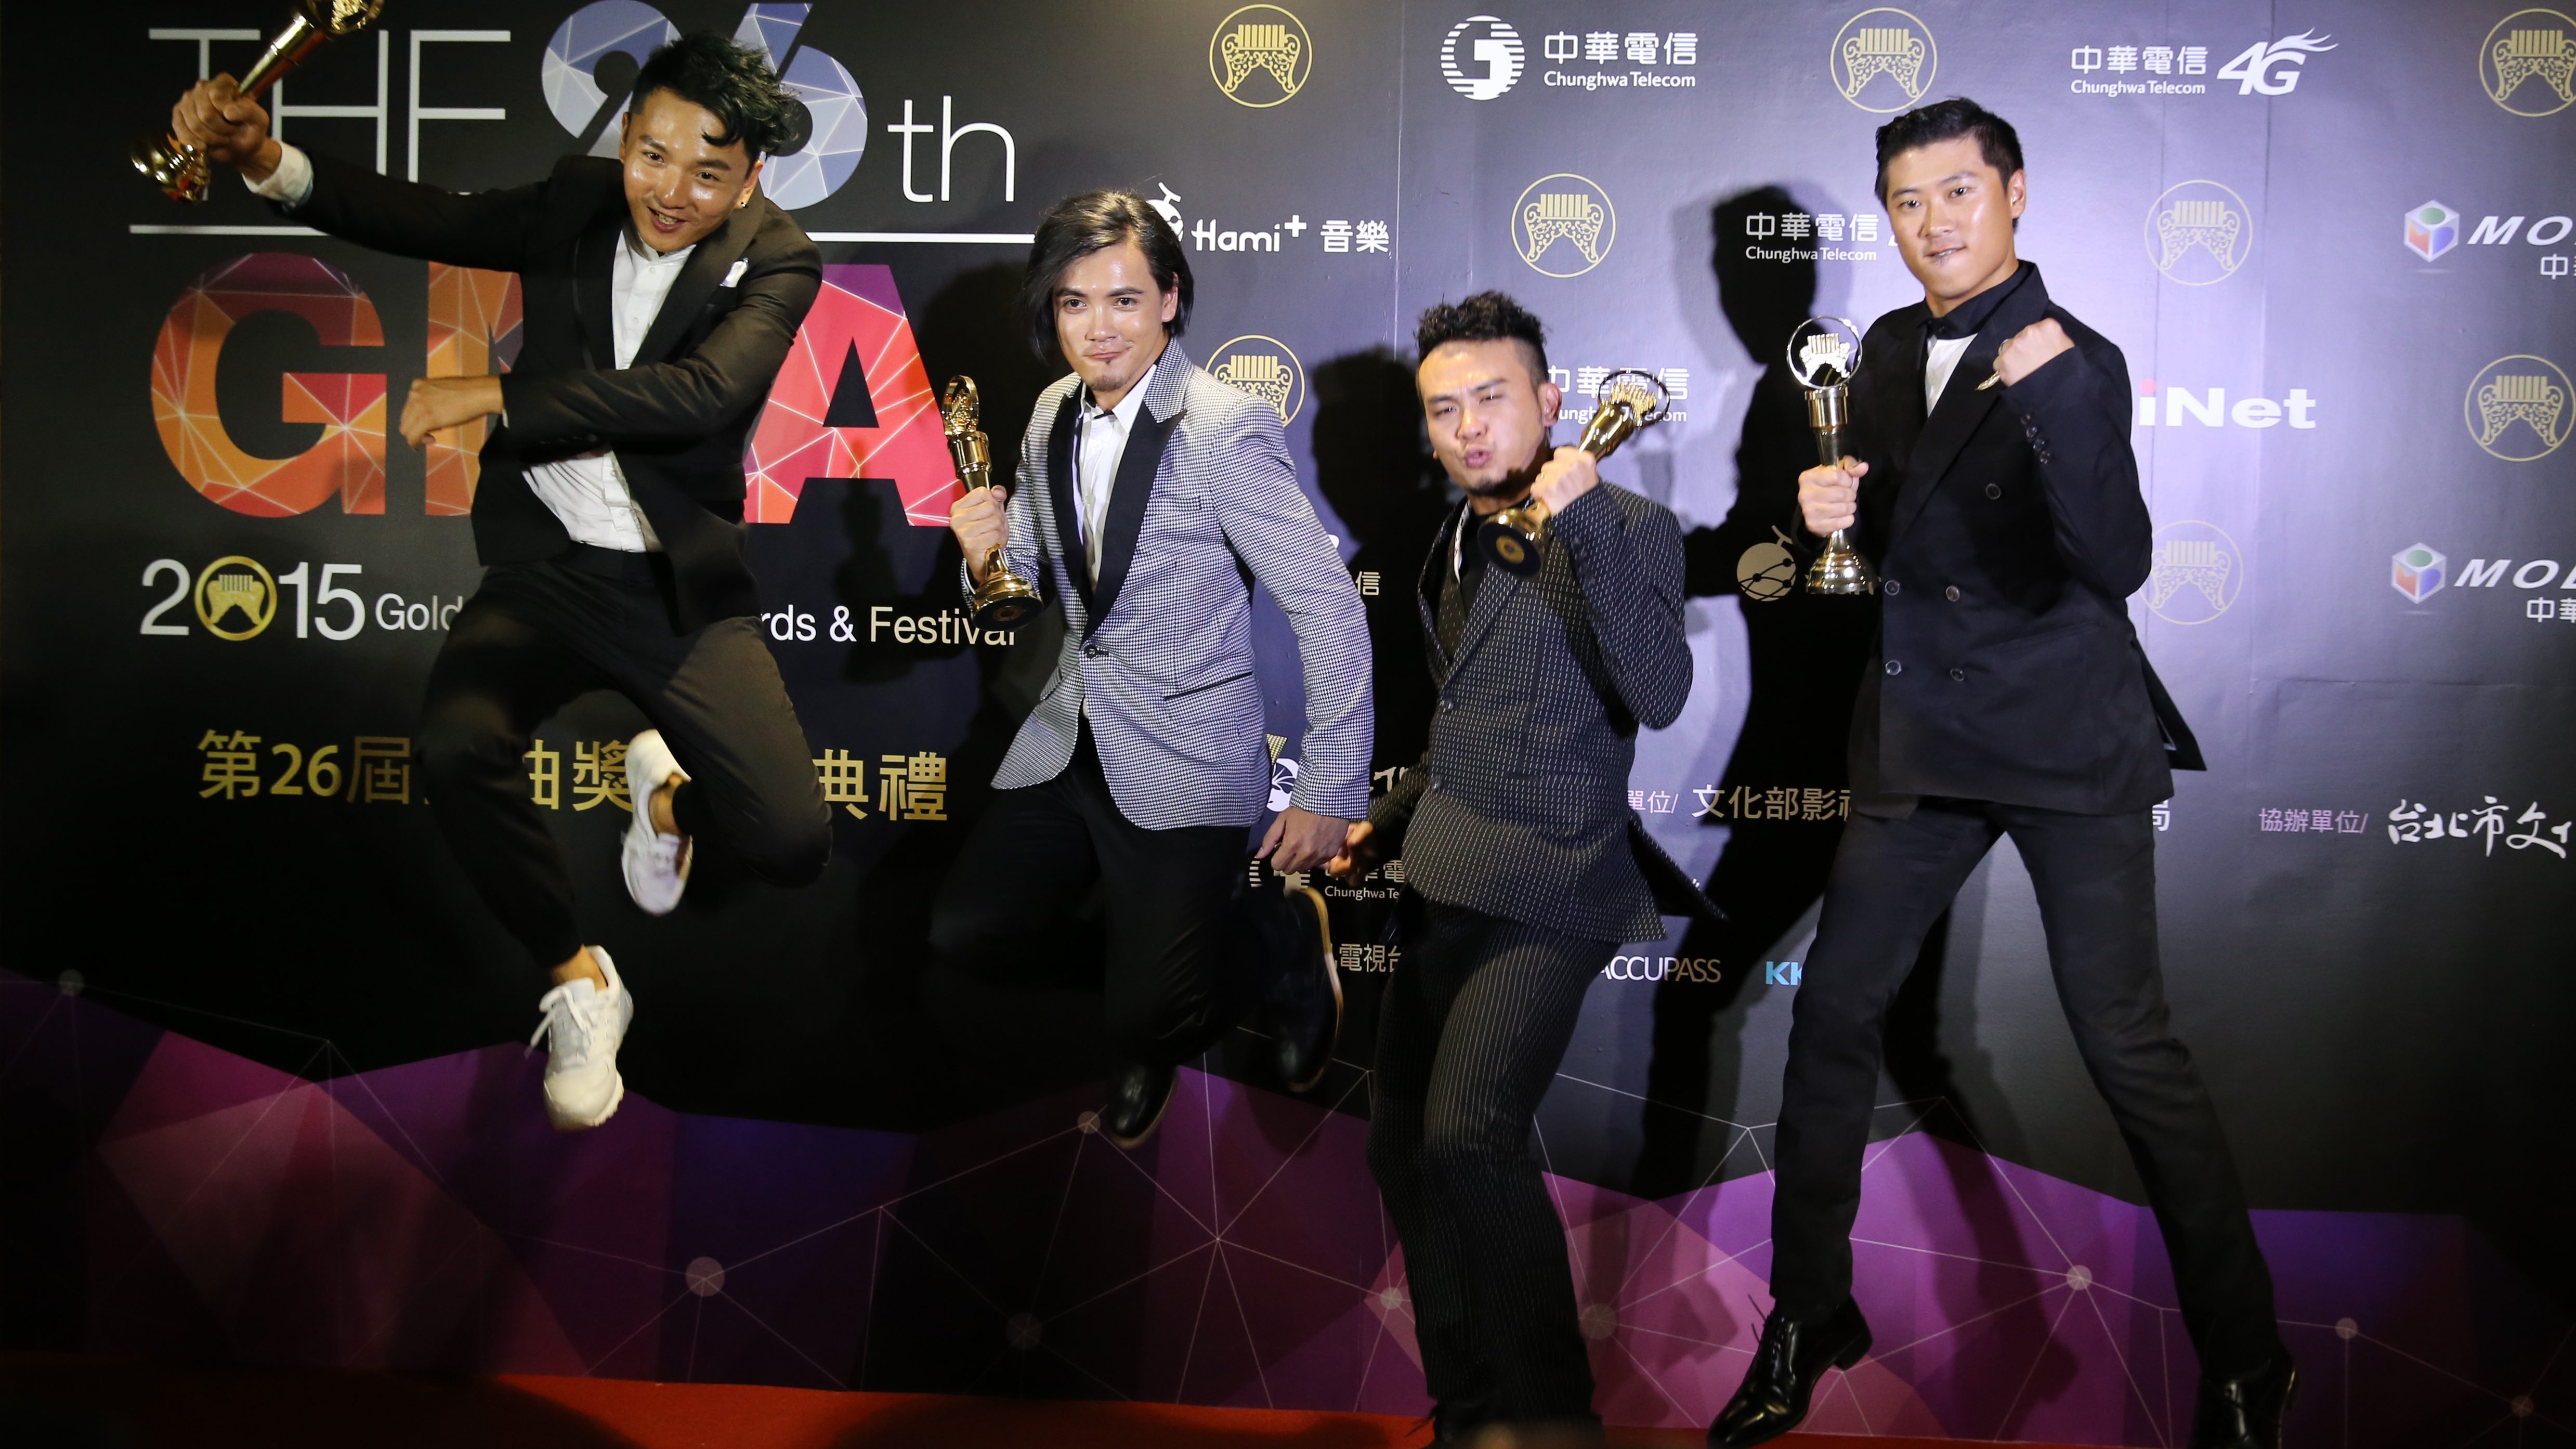 Taiwanese pop group Fire EX. jumps in the air for media as they display their awards for the Best Song at the 26th Golden Melody Awards in Taipei, Taiwan, Saturday, June 27, 2015. Fire EX. is nominated as the Best Song at this year's Golden Melody Awards, one of the world's biggest Chinese-language pop music annual events. (AP Photo/Wally Santana)